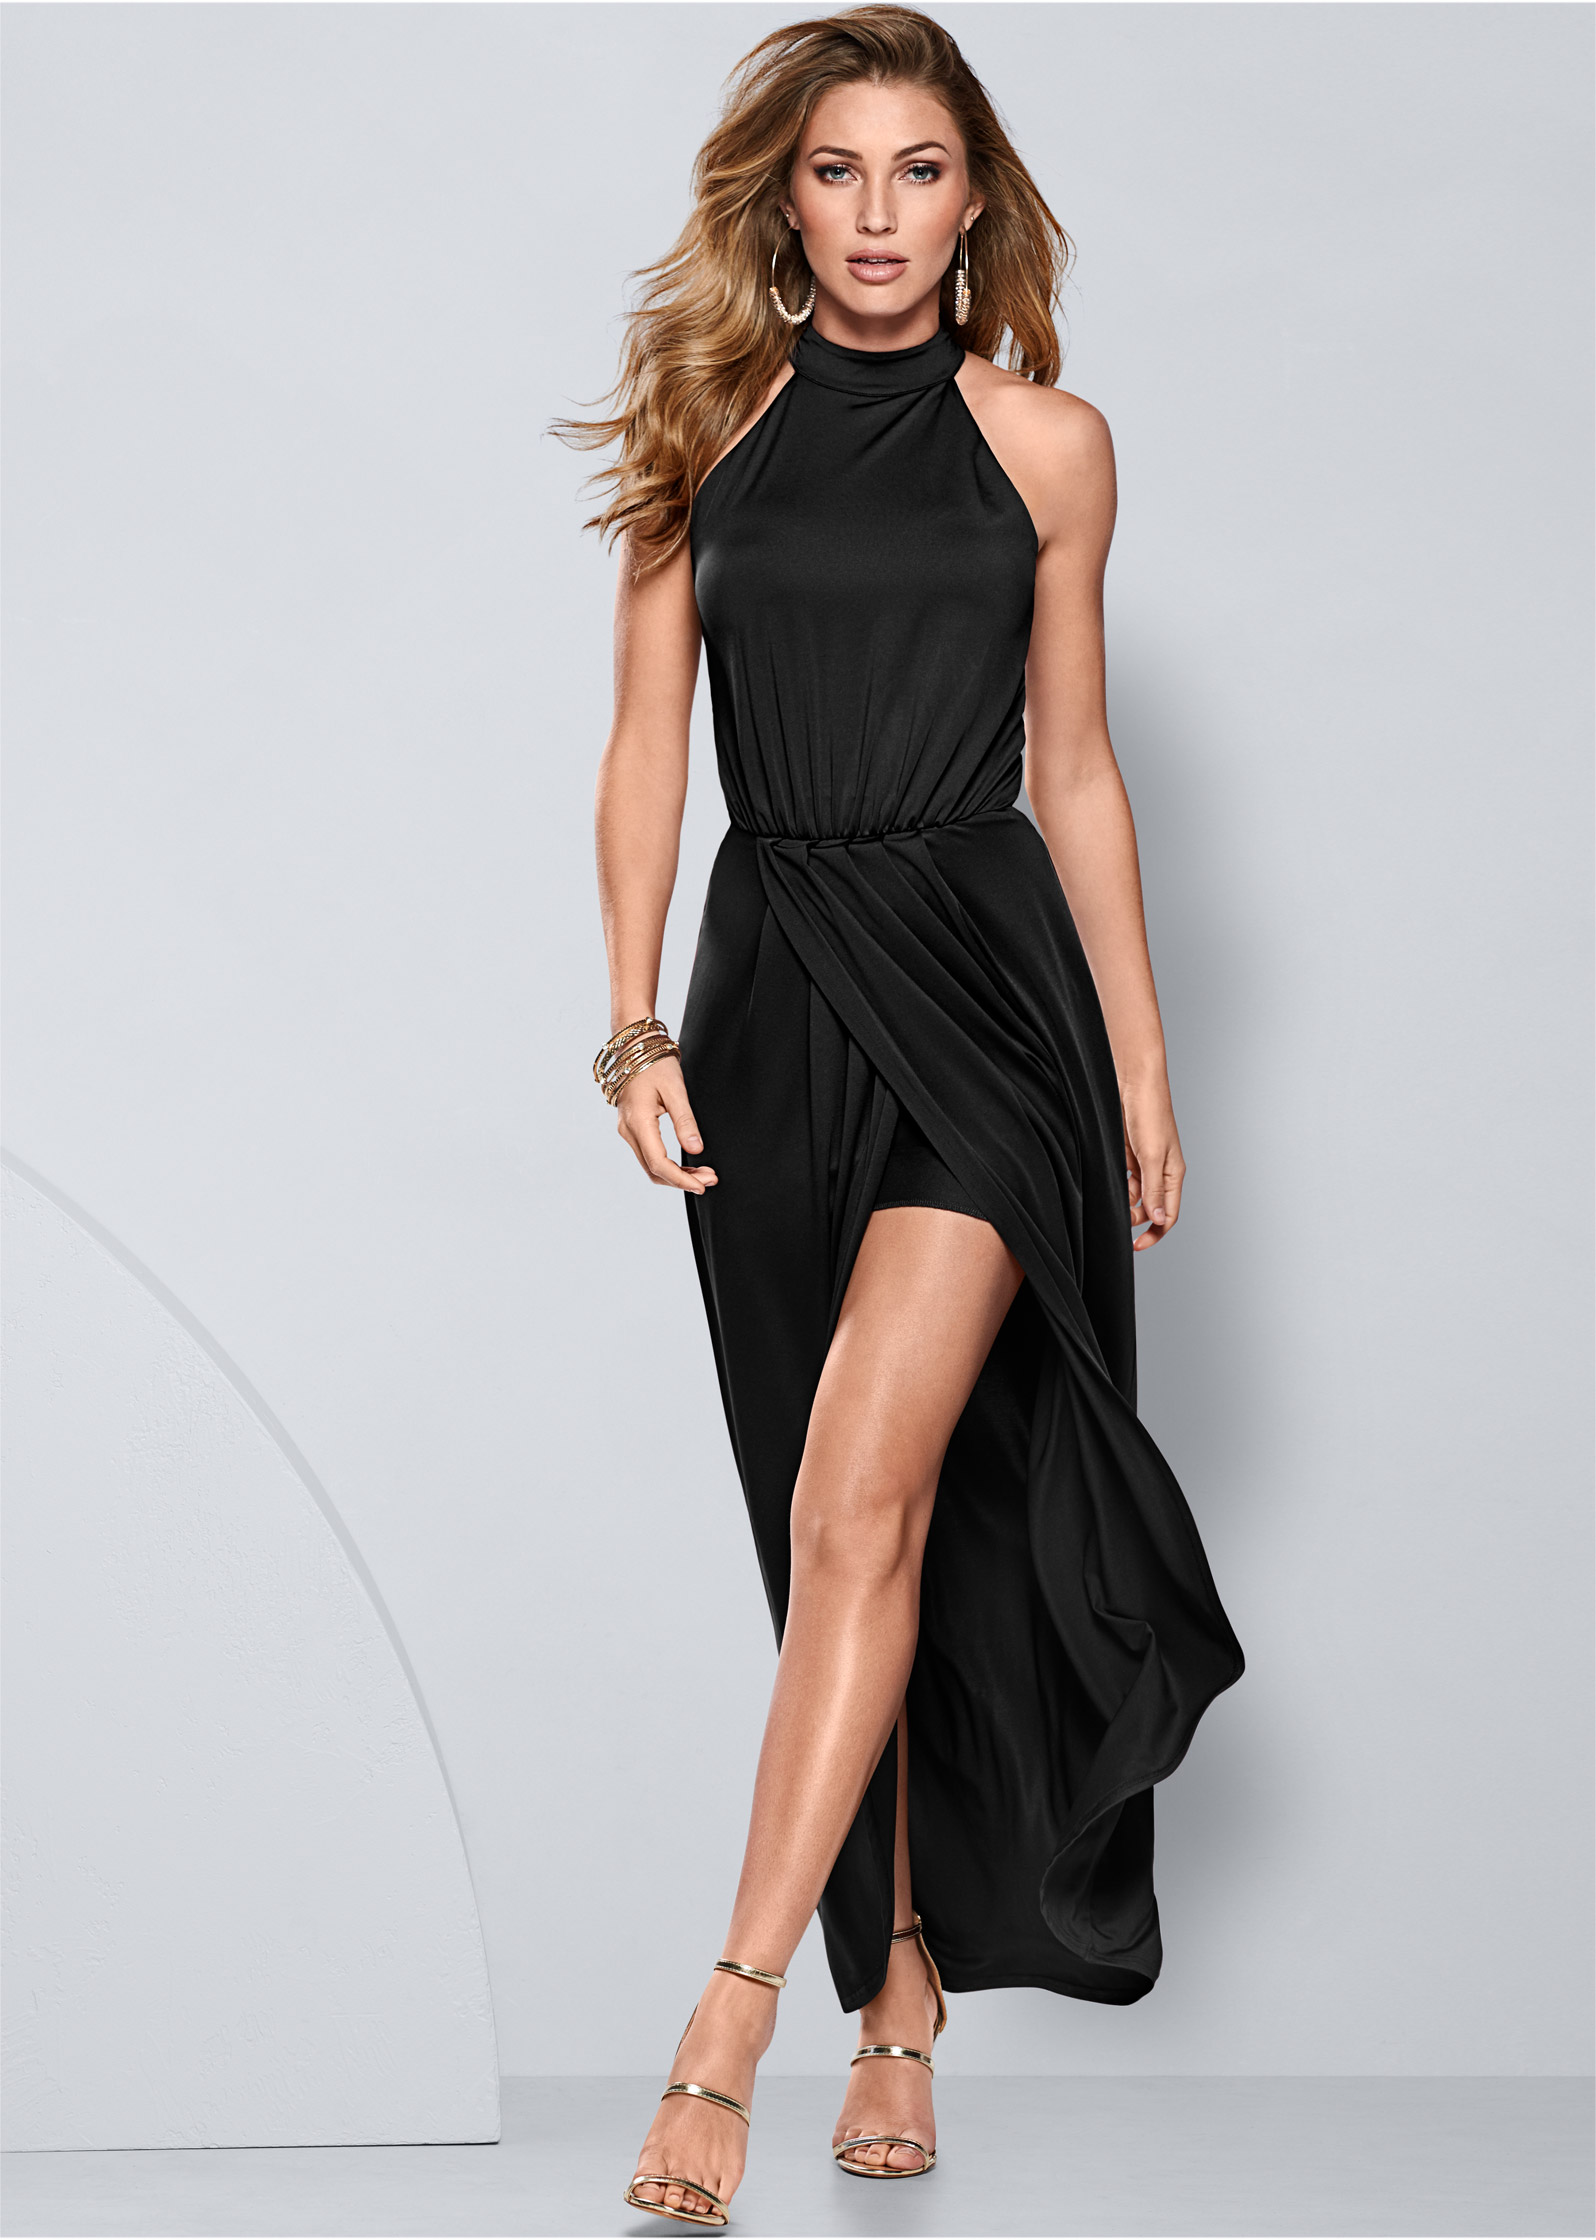 Formal Dresses and Gowns